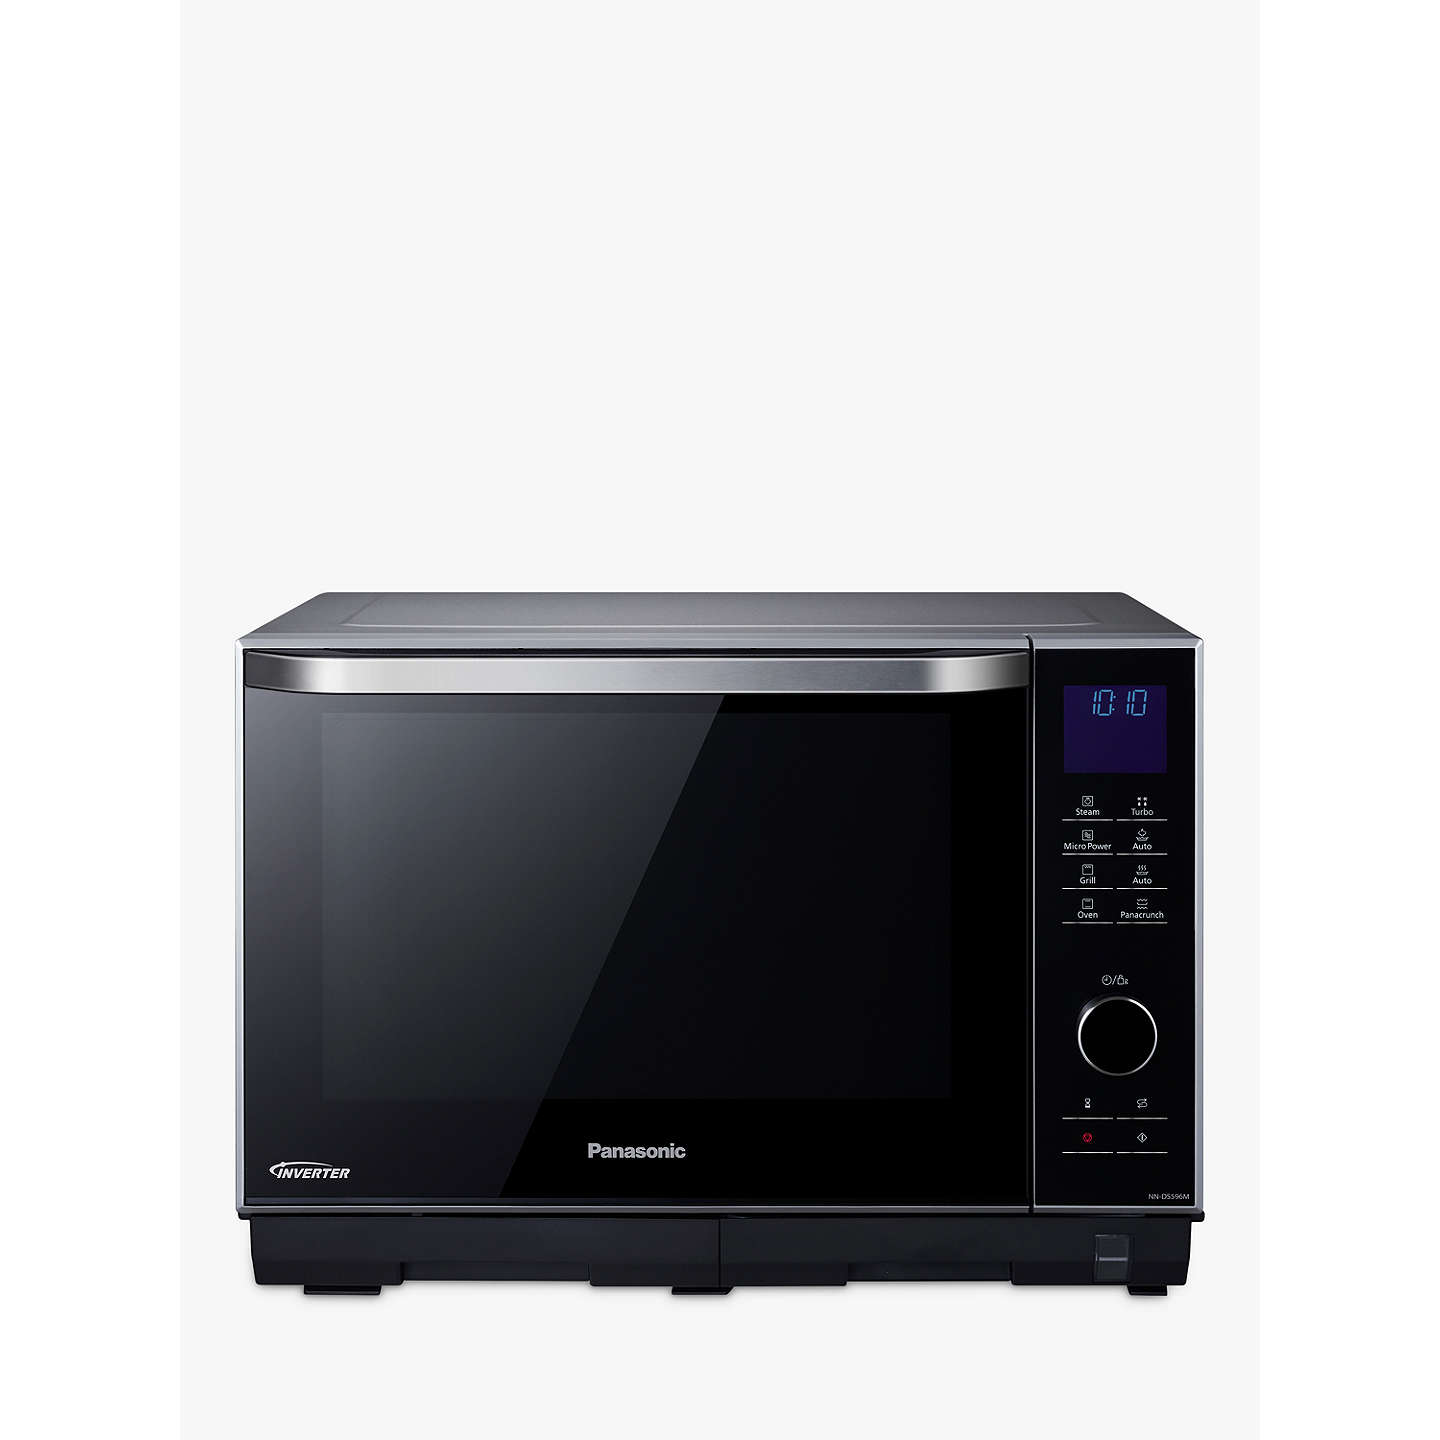 Panasonic Nn Ds596bbpq Freestanding 4 In 1 Steam Combination Microwave Oven With Grill